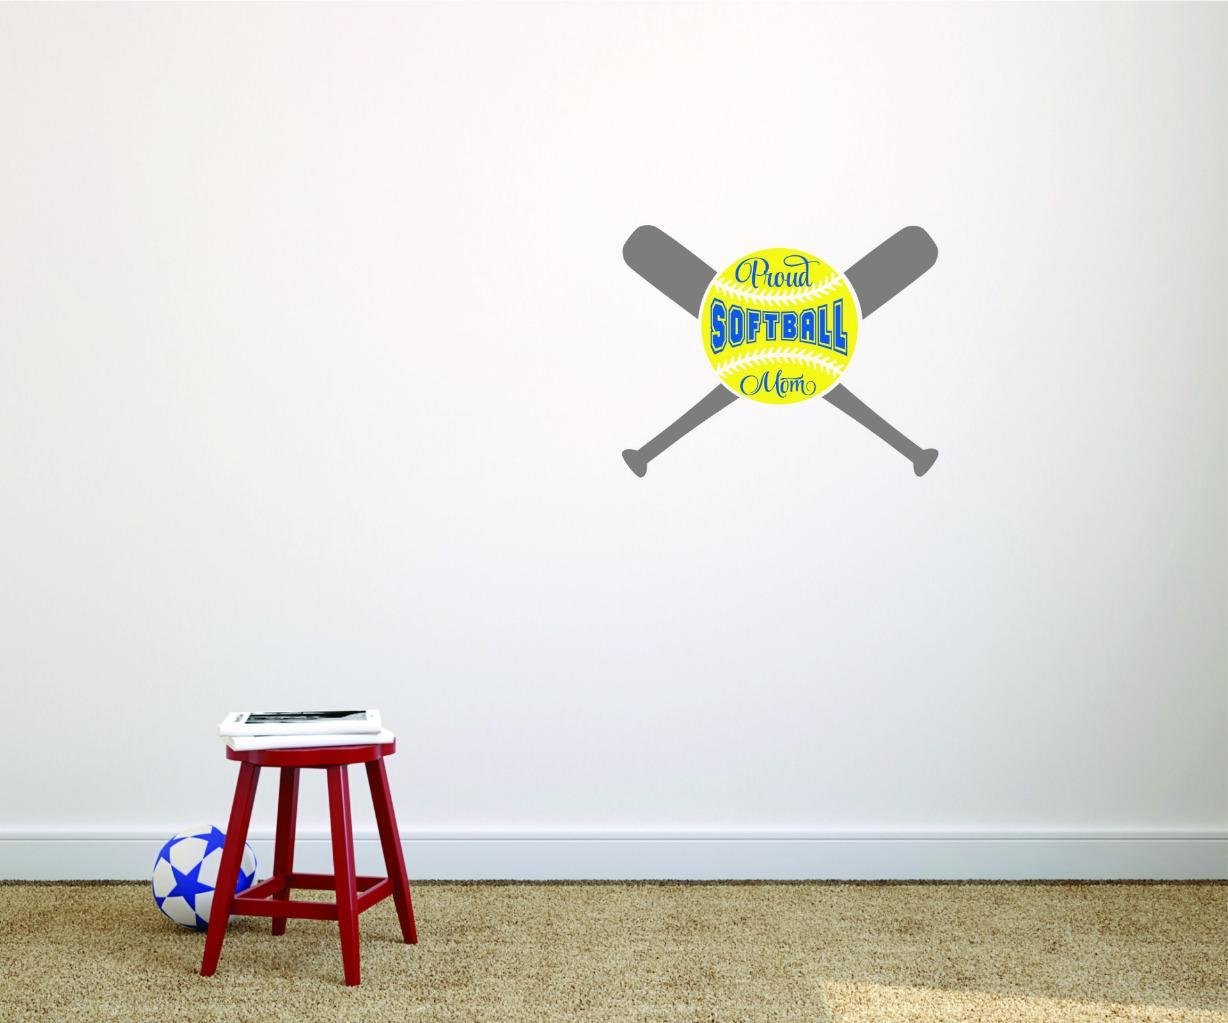 Proud Softball Mom Sports Son Daughter Boy Girl Teen Color Design with Vinyl Moti 2695 4 Decal Peel /& Stick Wall Sticker As Seen Size 20 Inches x 20 Inches